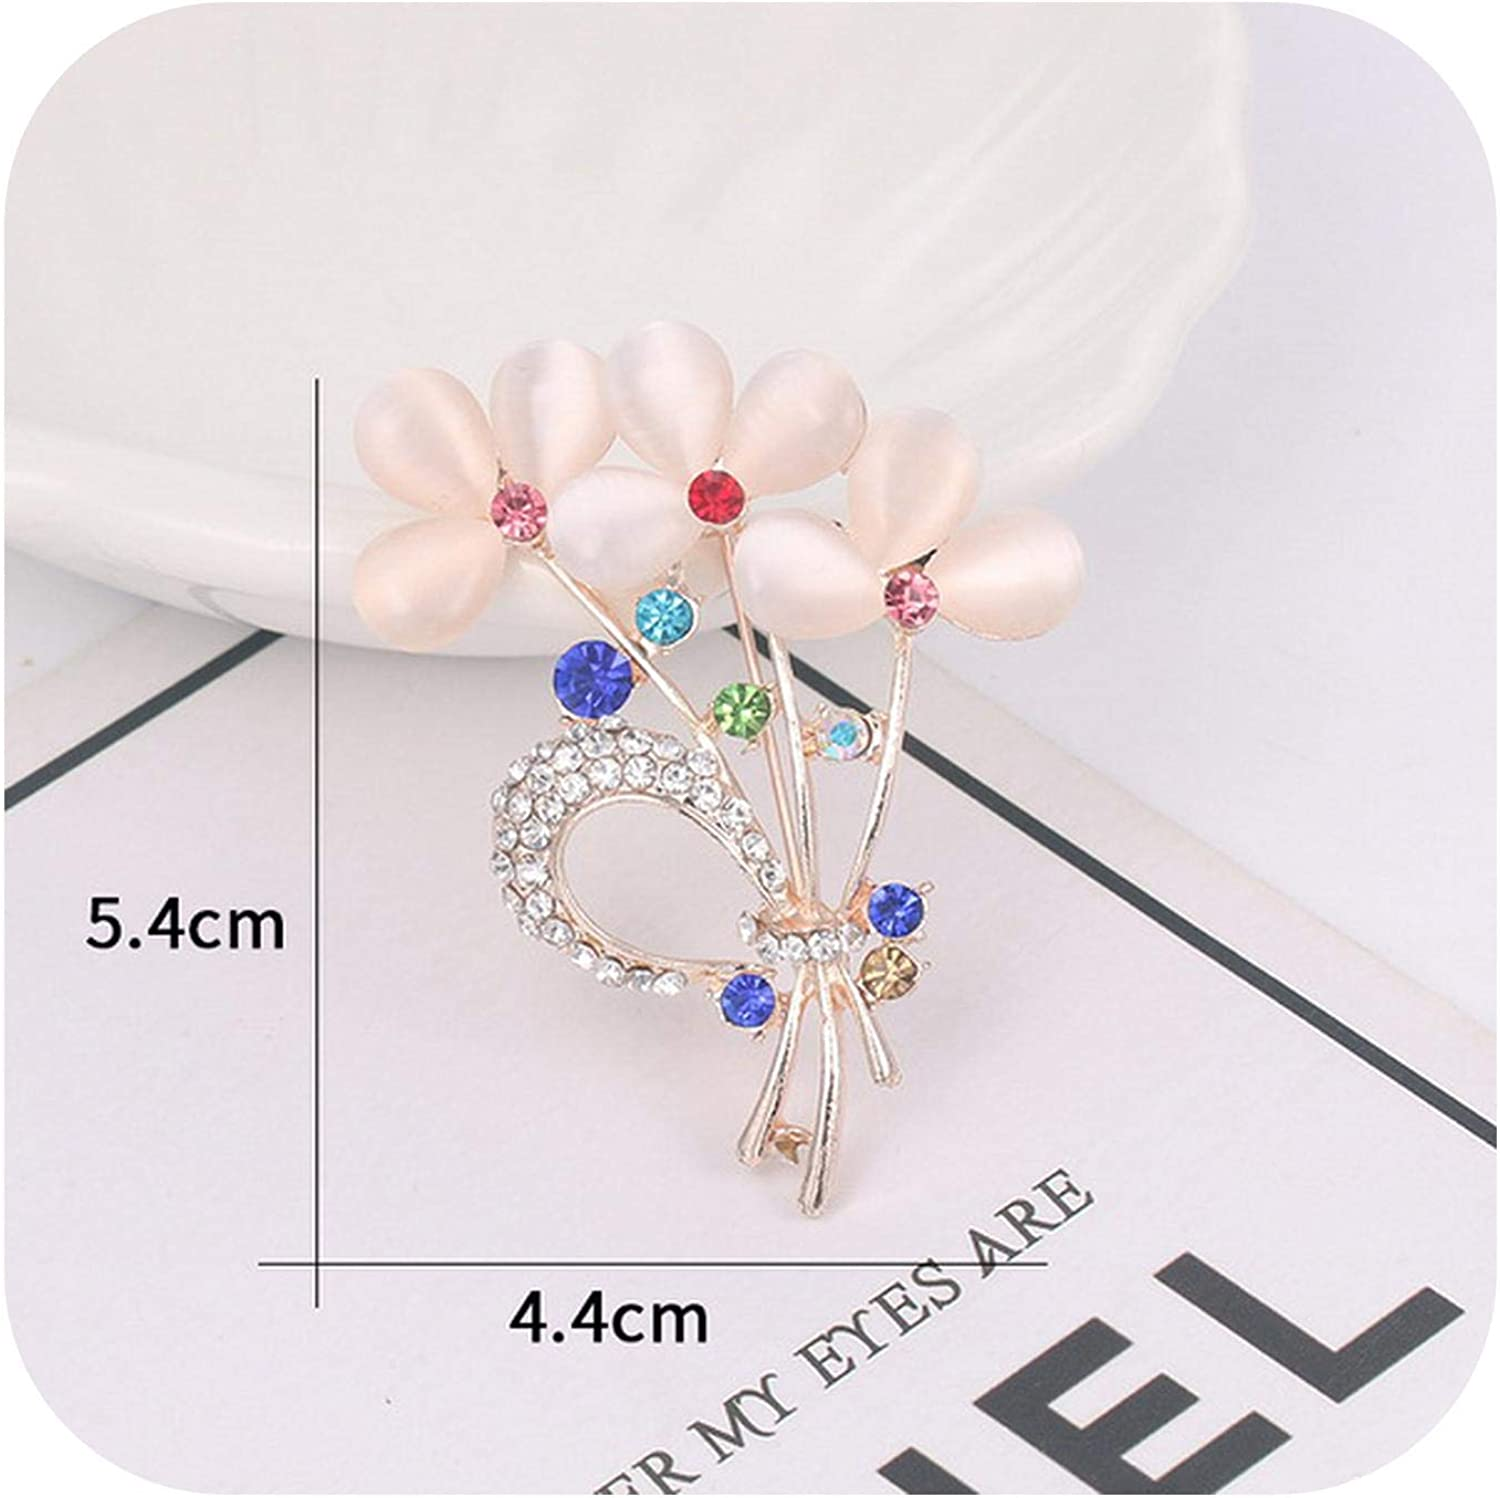 Lanng Assorted Beige Opal Stone Plant Flower or Butterfly Brooch Pins for Women